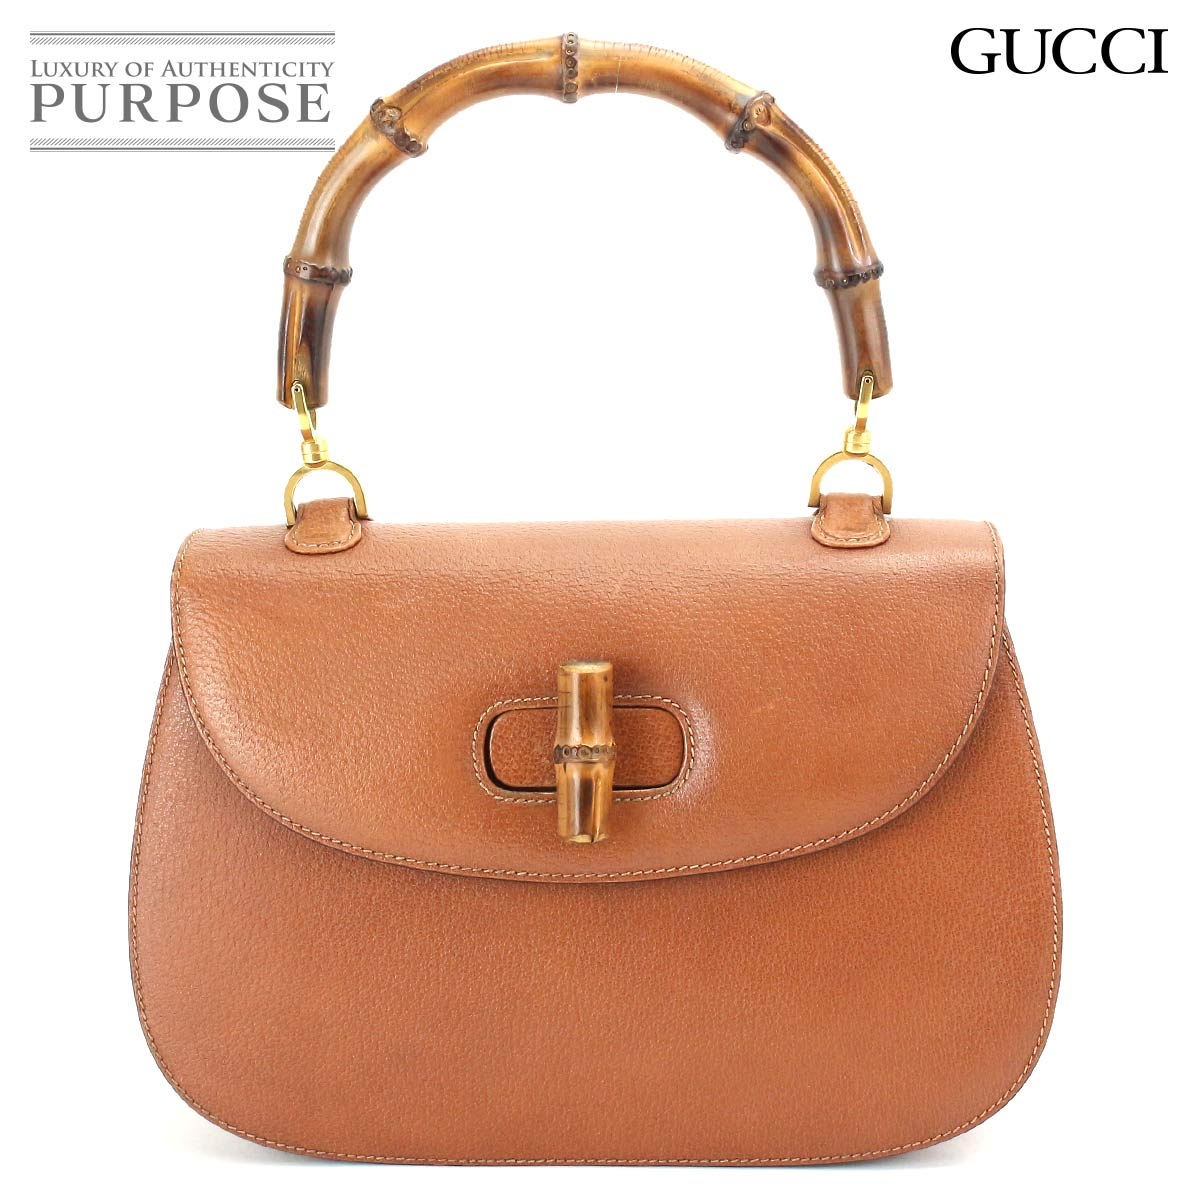 9063615e4c Gucci GUCCI bamboo handbag leather brown 000 46 0063 gold metal fittings